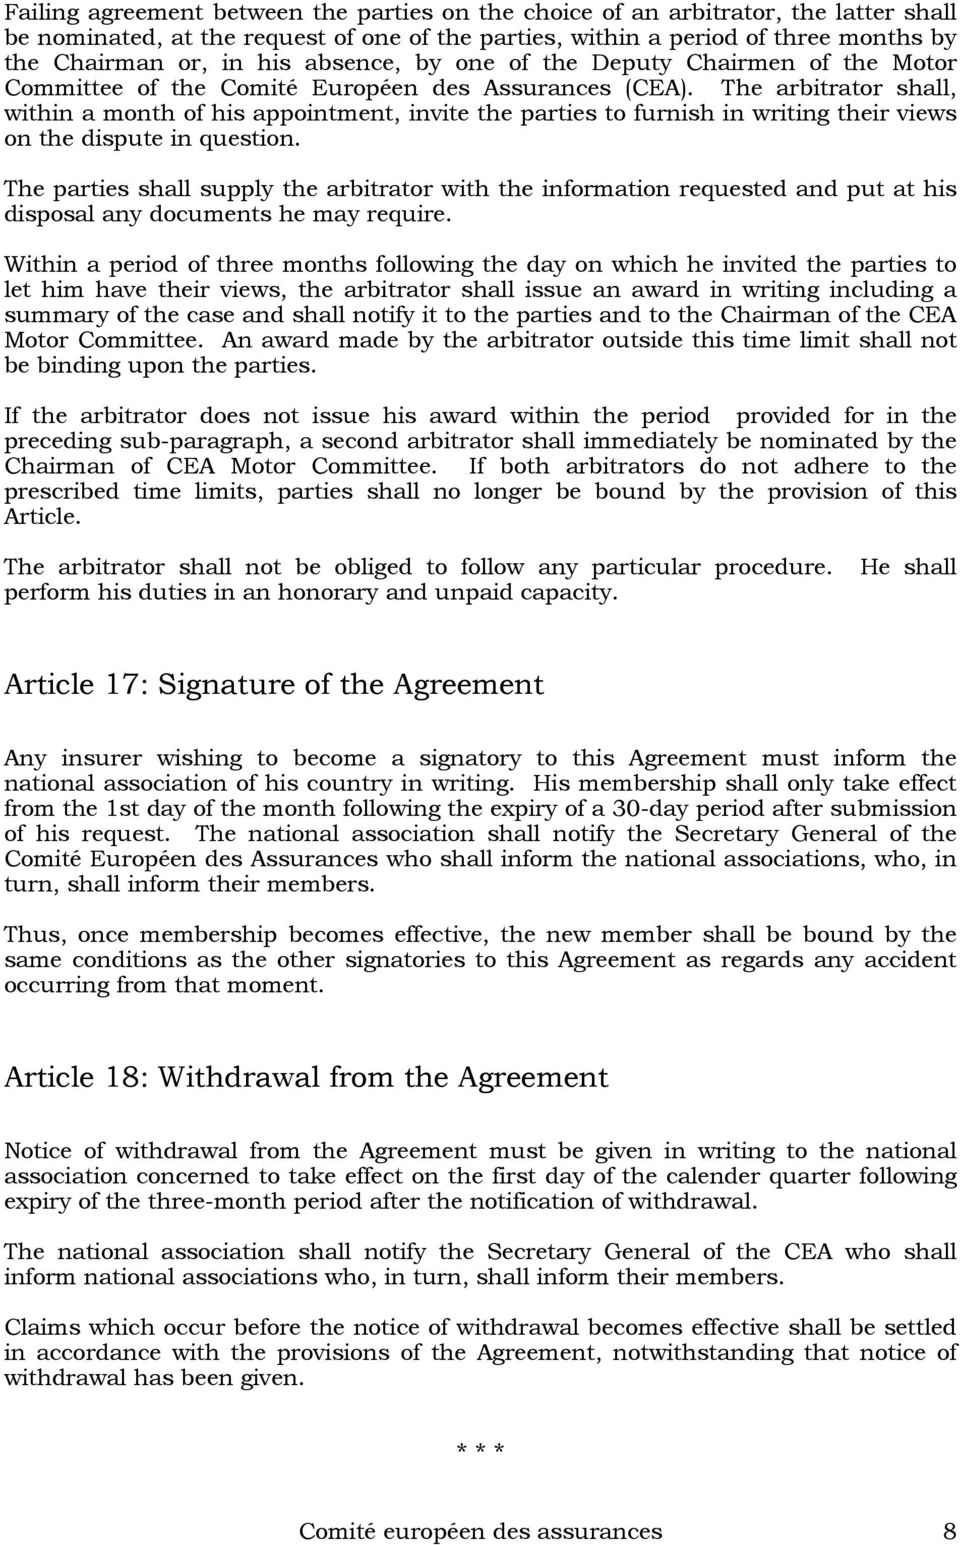 The arbitrator shall, within a month of his appointment, invite the parties to furnish in writing their views on the dispute in question.